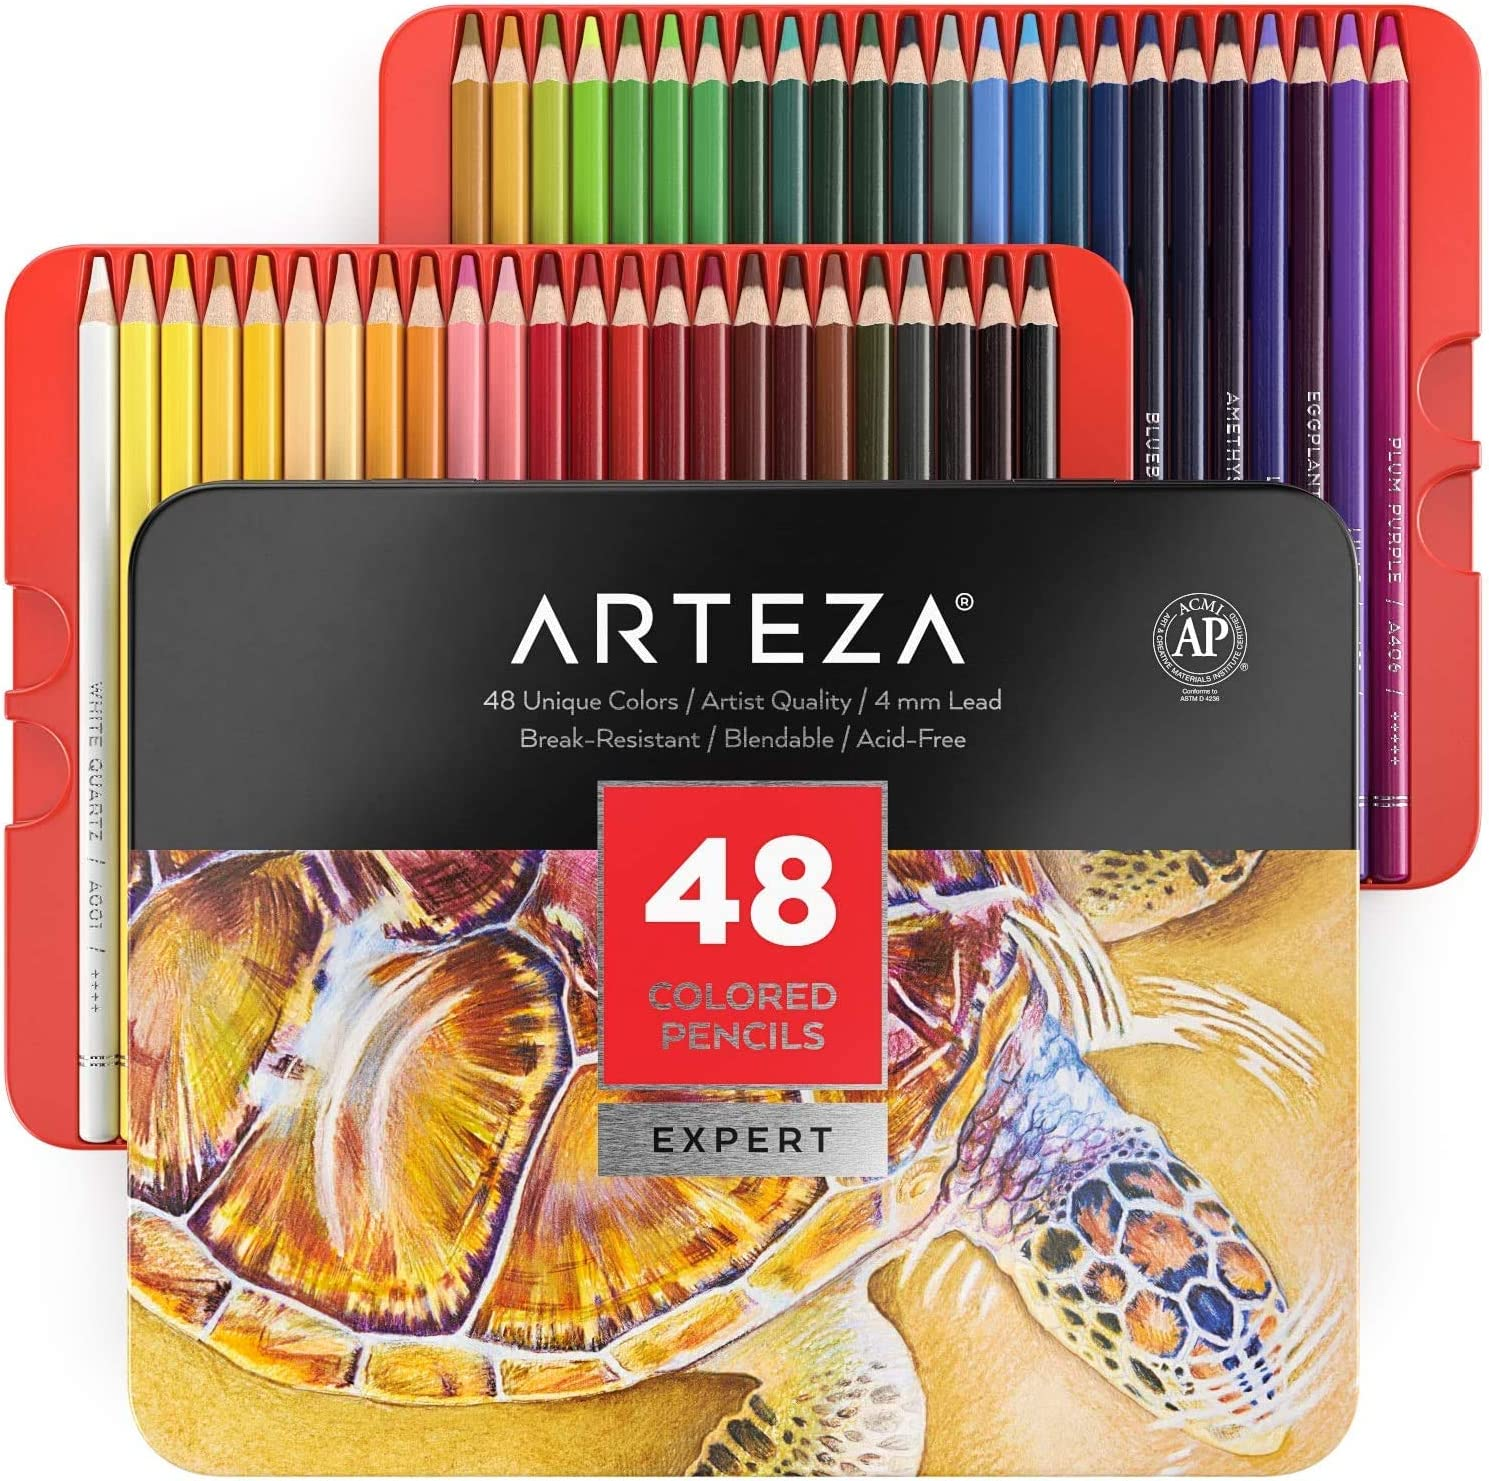 Arteza Colouring Pencils, Professional Set of 48 Colours in a Tin Box, Soft Wax-Based Cores, for Drawing, Sketching, Shading & Coloring, Vibrant Coloured Pencils for Adults & Pro Artists